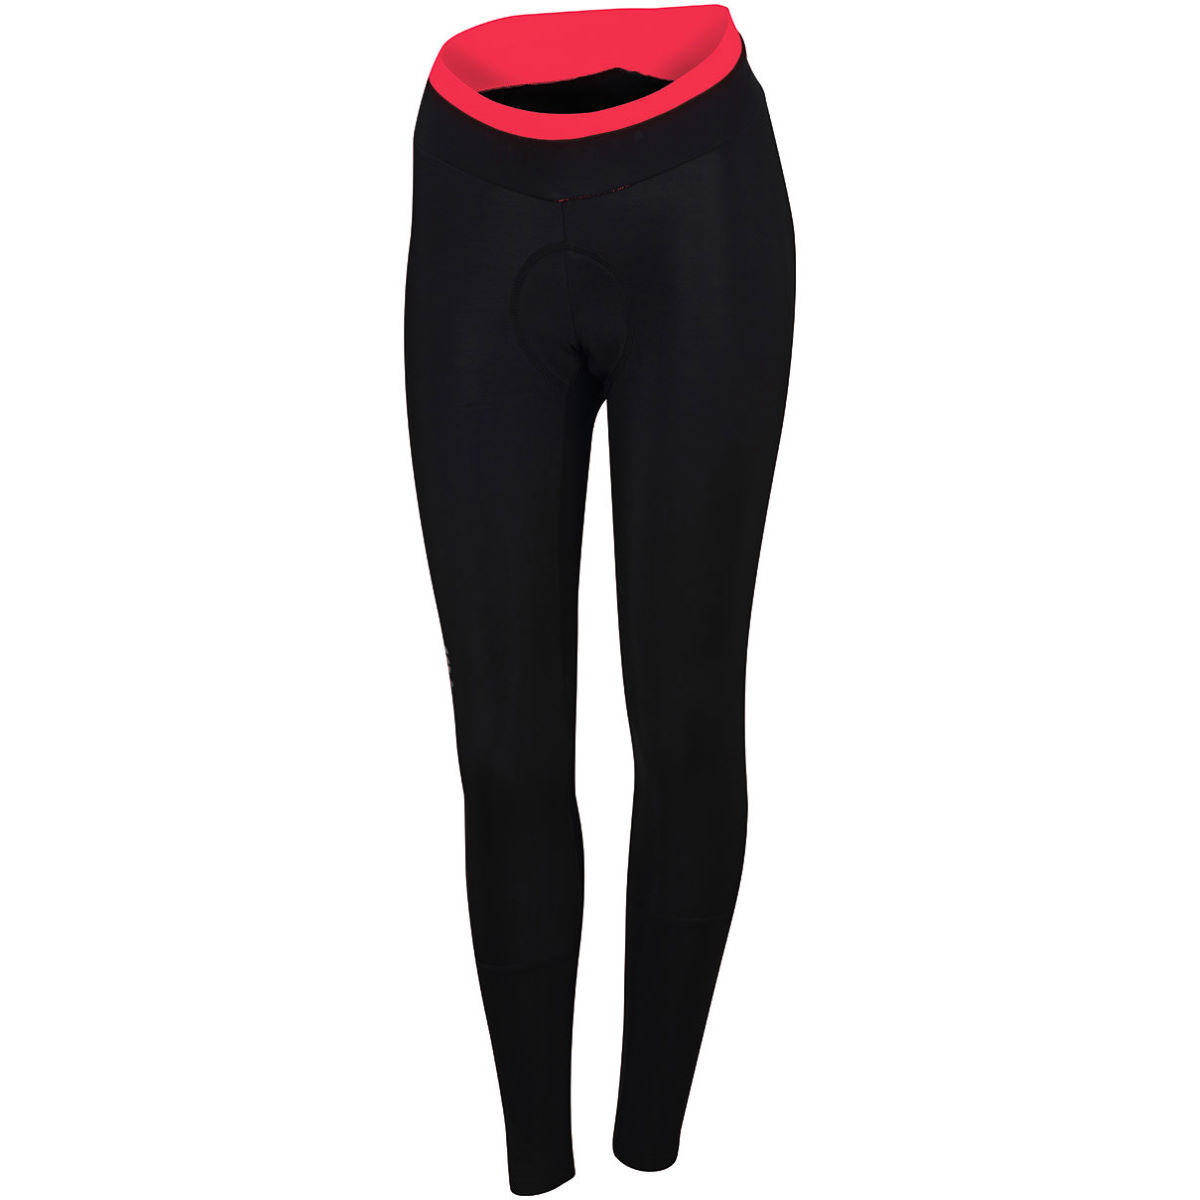 Cuissard long Femme Sportful Luna Thermal - M Black/Coral Fluo